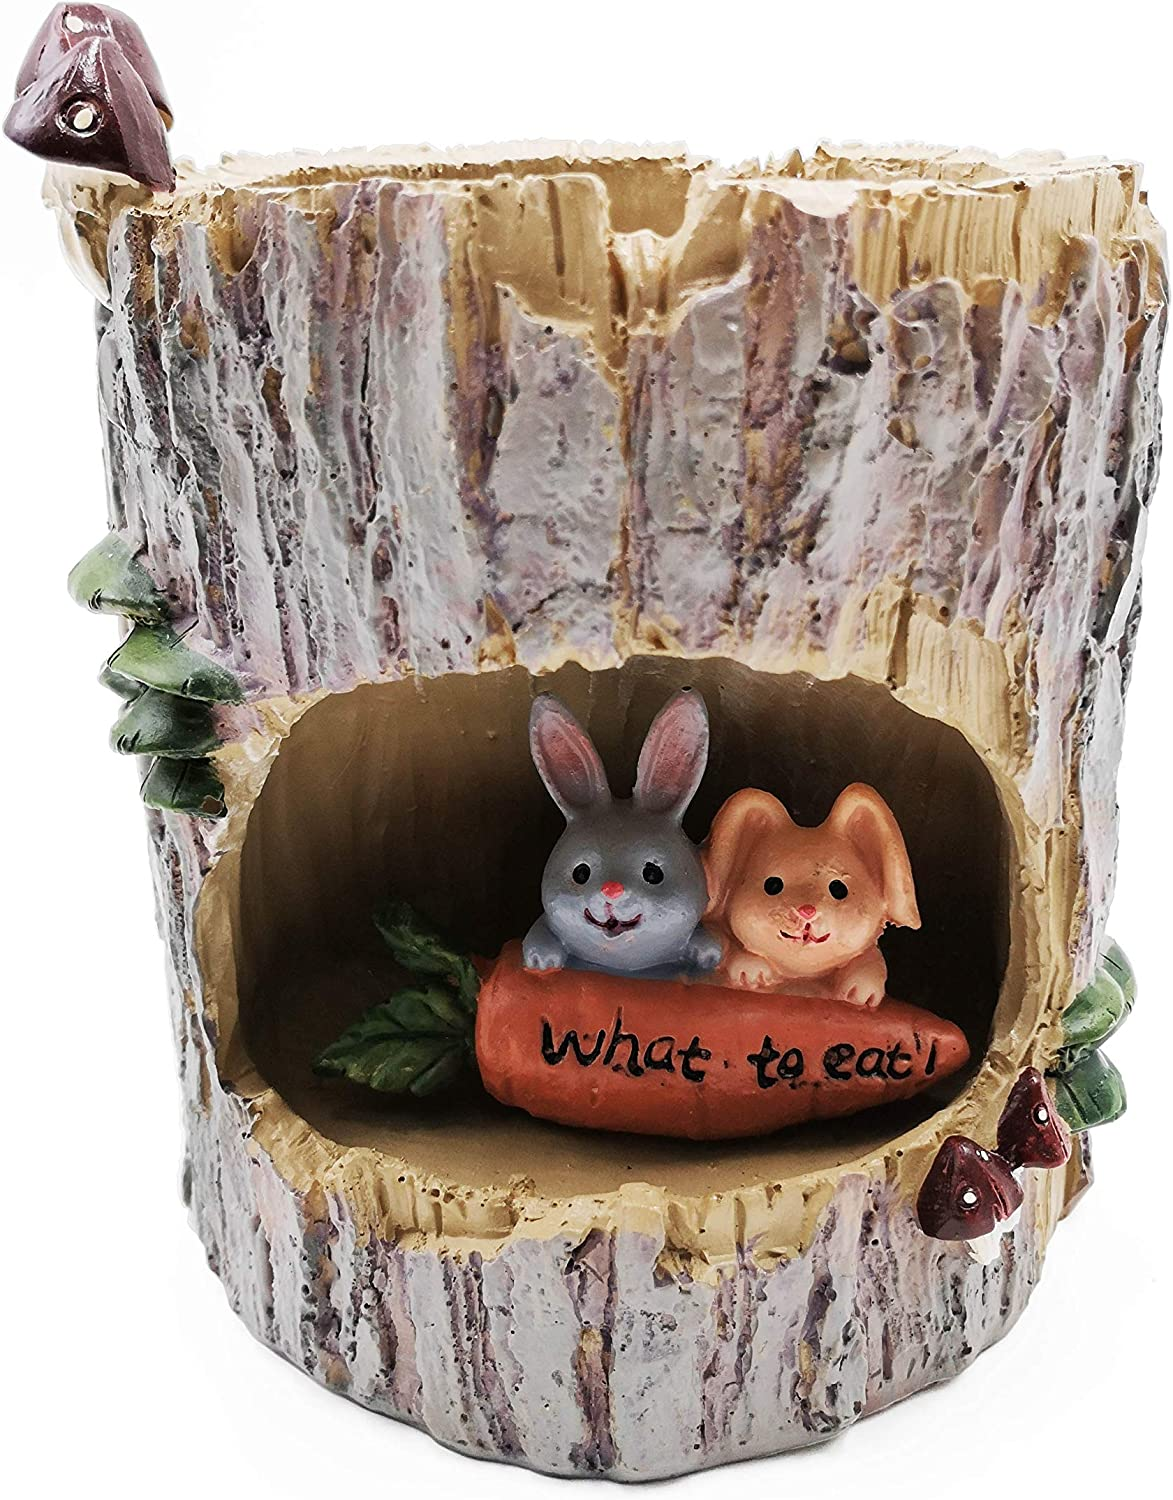 JAMOR Micro-Landscape Plant Pots Tiny Creative Flower Pots Cute Cartoon Tree Stump Besign (Rabbit)